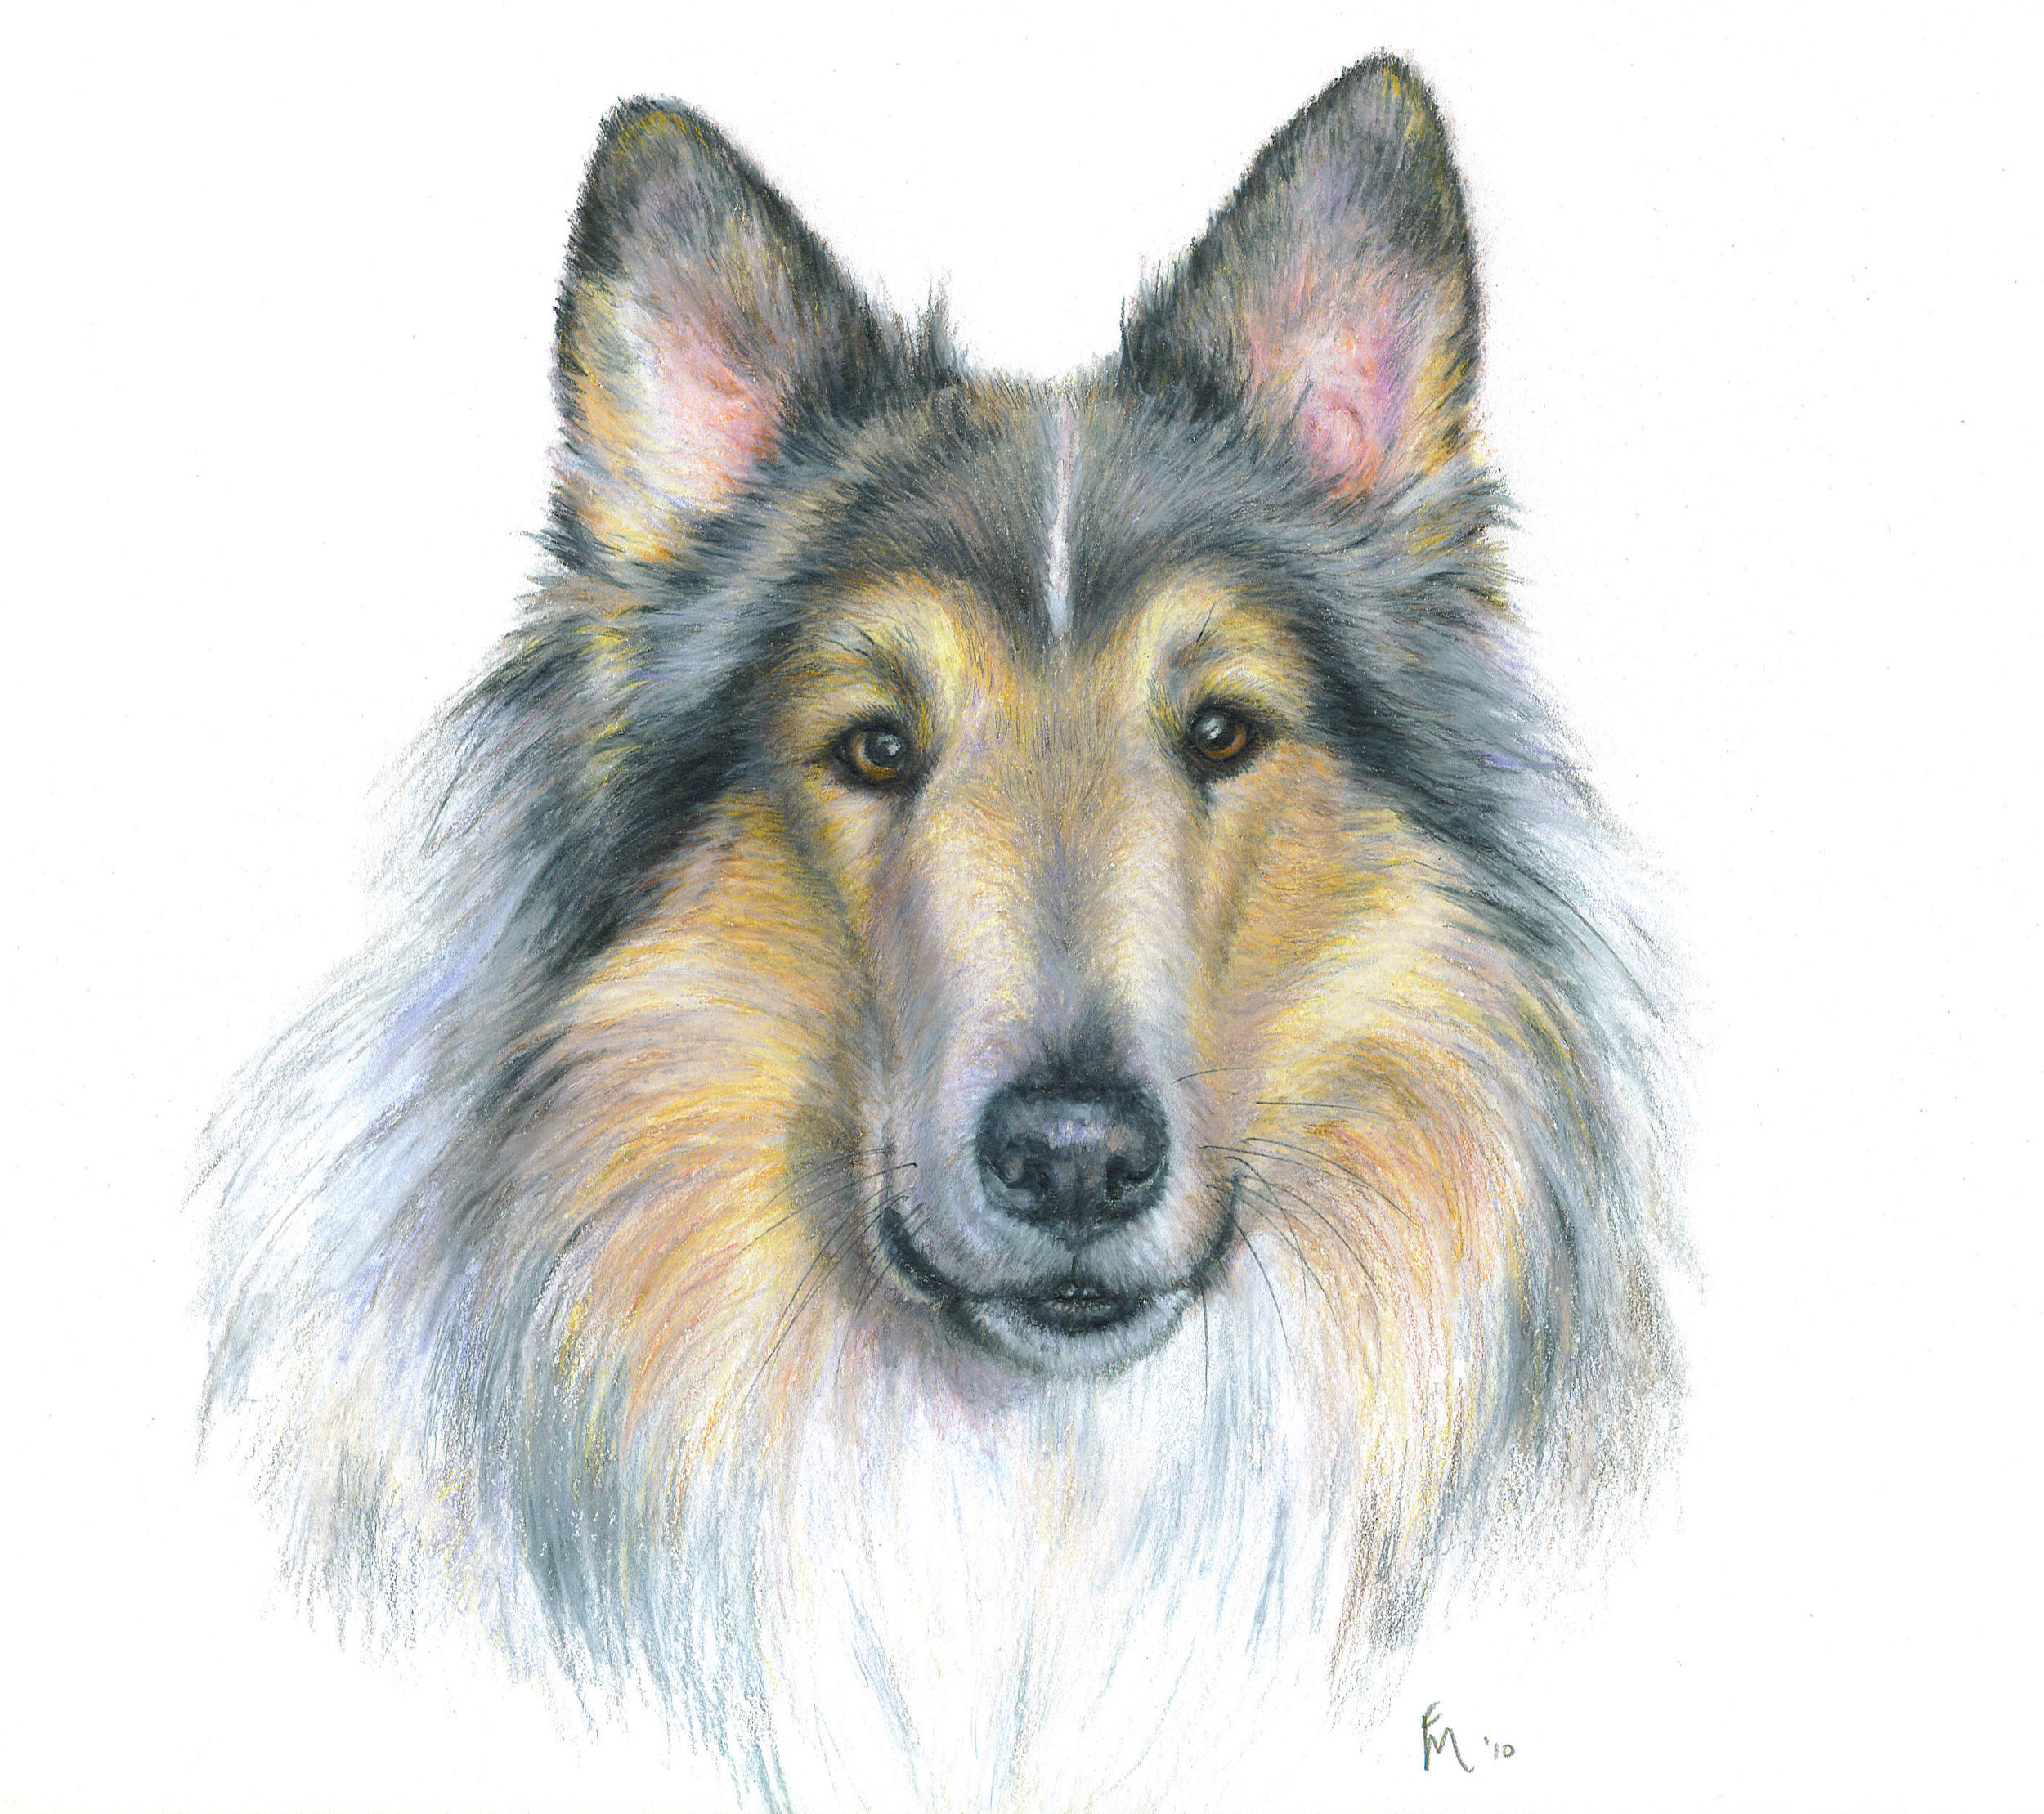 Colored Pencil - My favorite colored pencils to work with are Prismacolor, they are soft and waxy and render fine details. Colors are created by layering to exactly match your pet's coat colors.The secret to a great pet portrait is to capture their eyes!